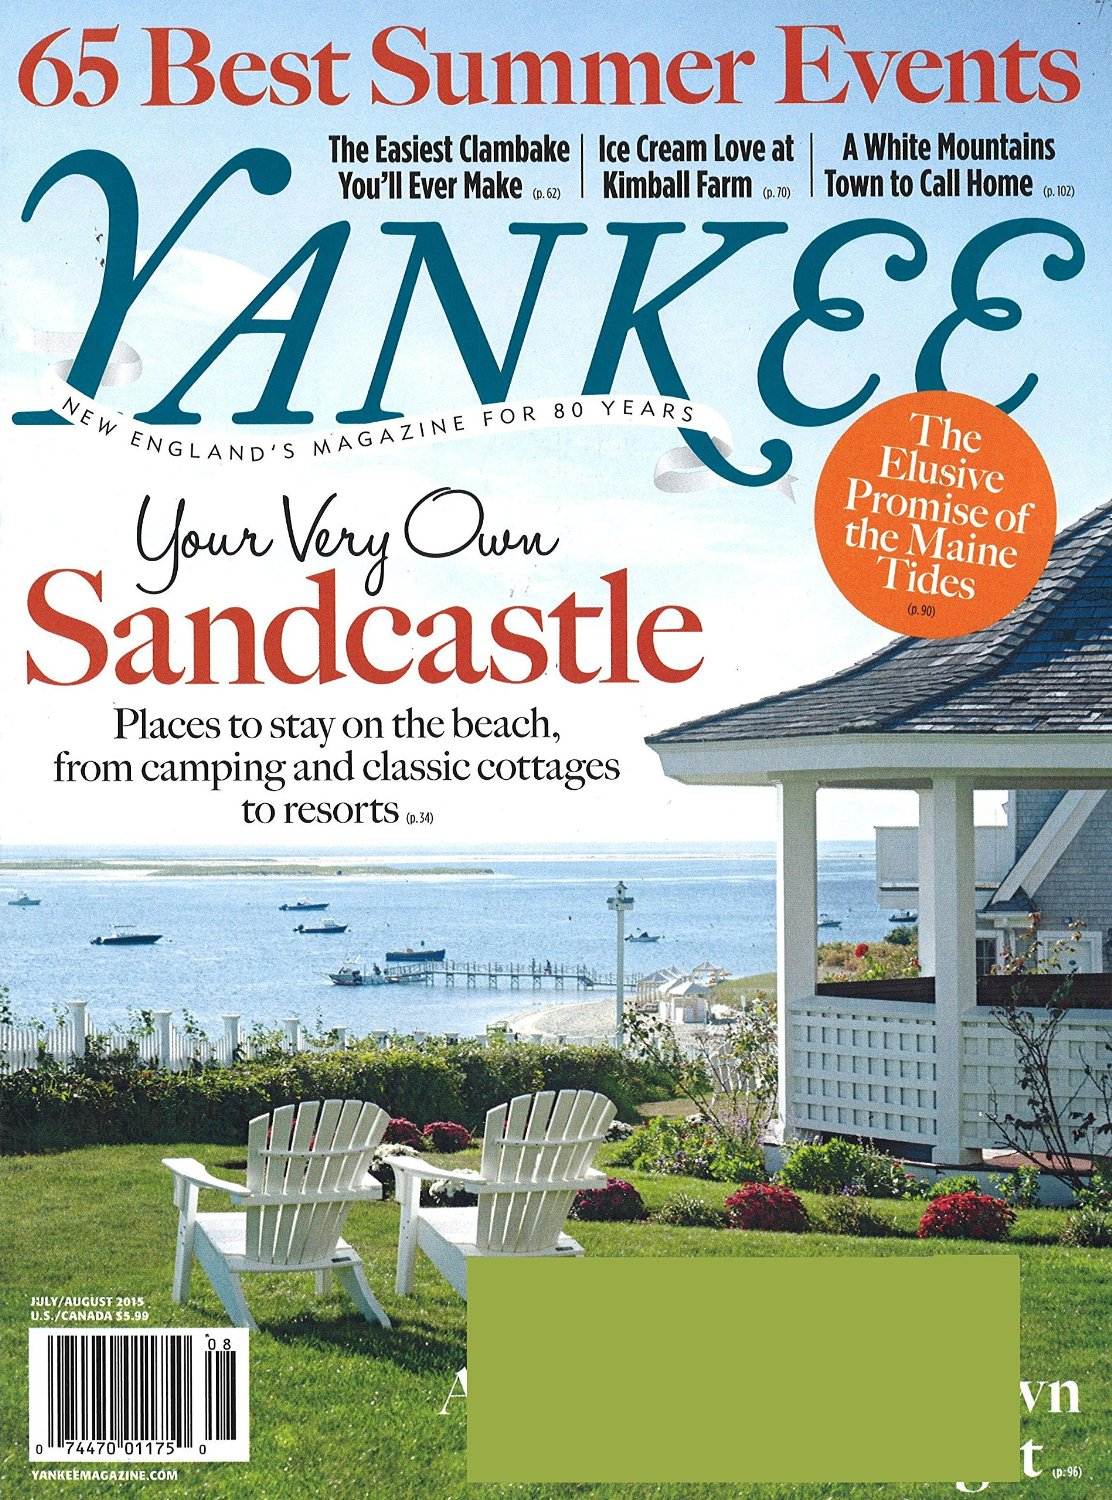 Best Price for Yankee Magazine Subscription